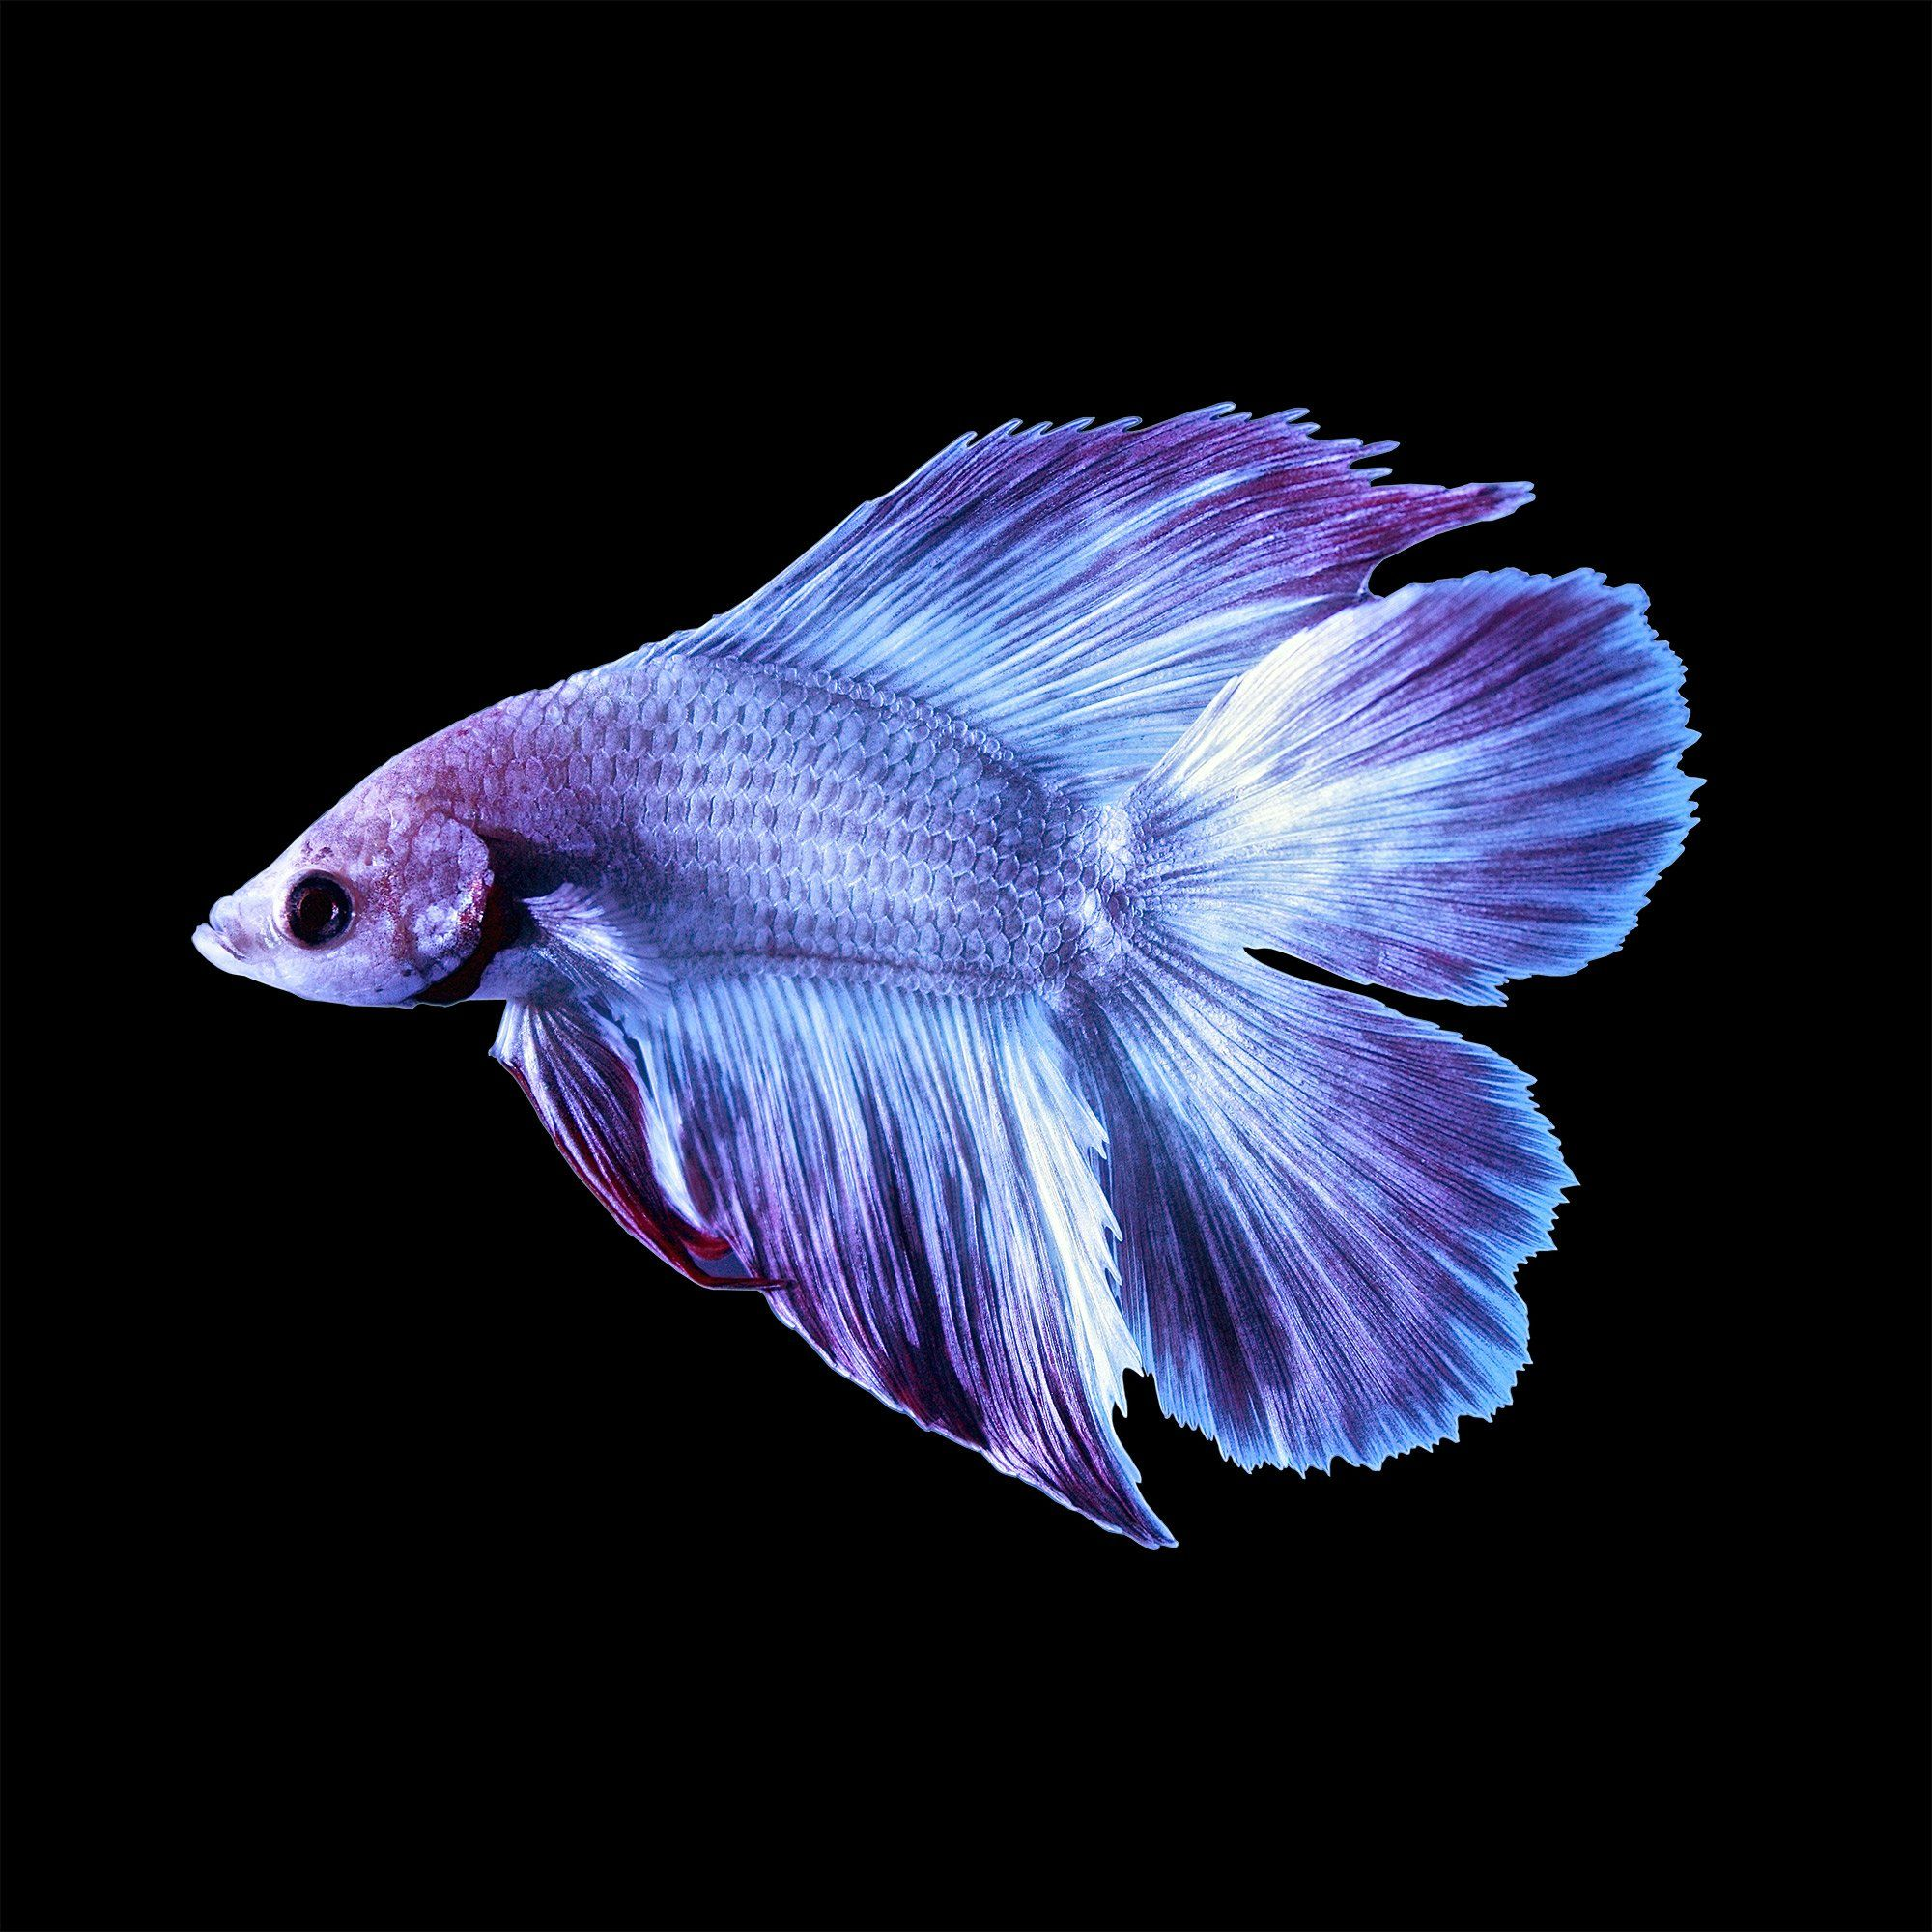 Male Doubletail Bettas For Sale Order Online Petco In 2021 Pet Fish Betta Fish Betta Fish Tank